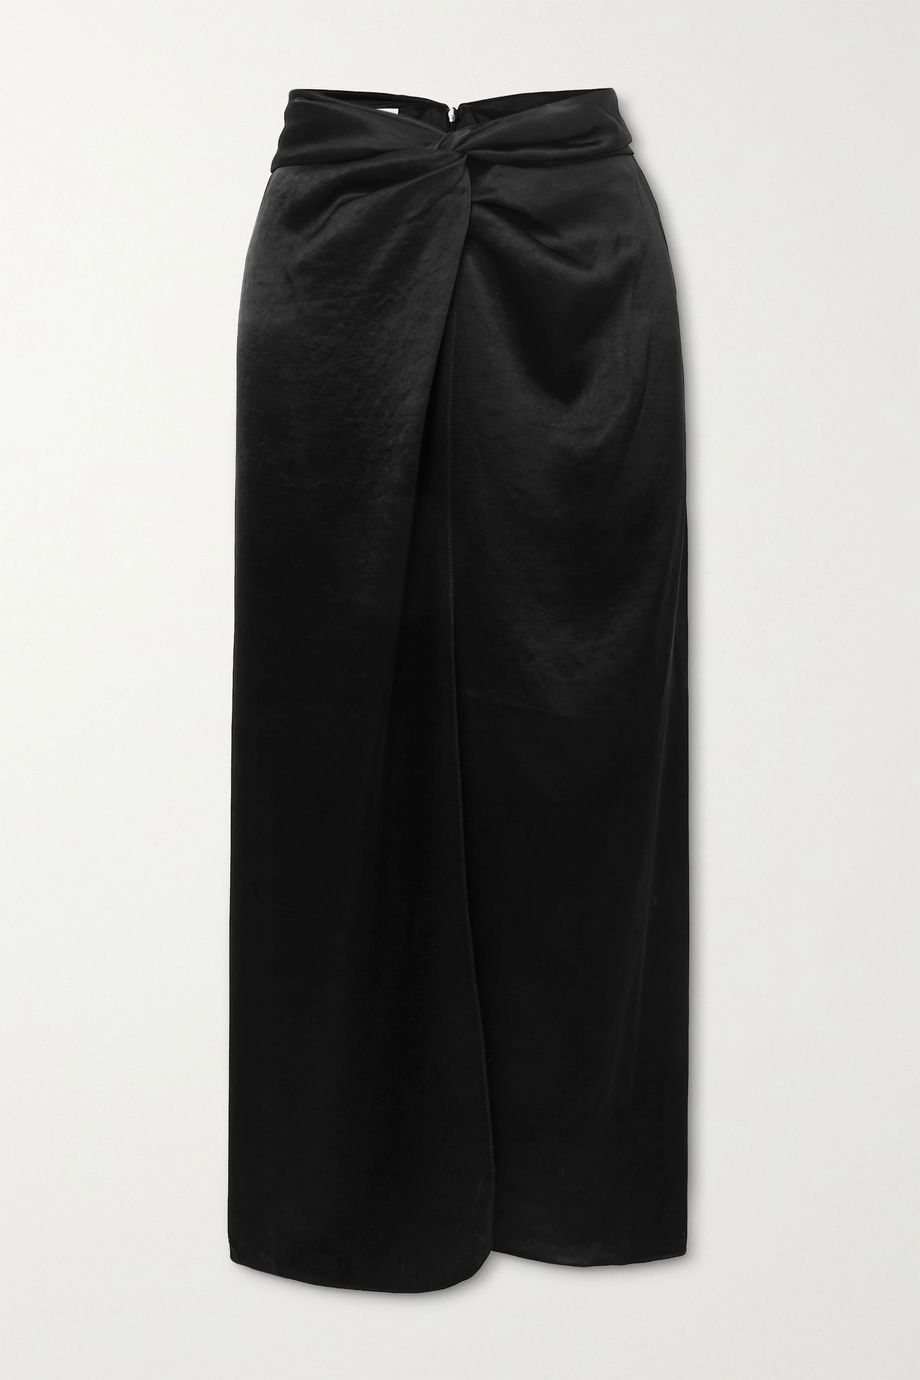 Nanushka Samara knotted washed-satin midi skirt